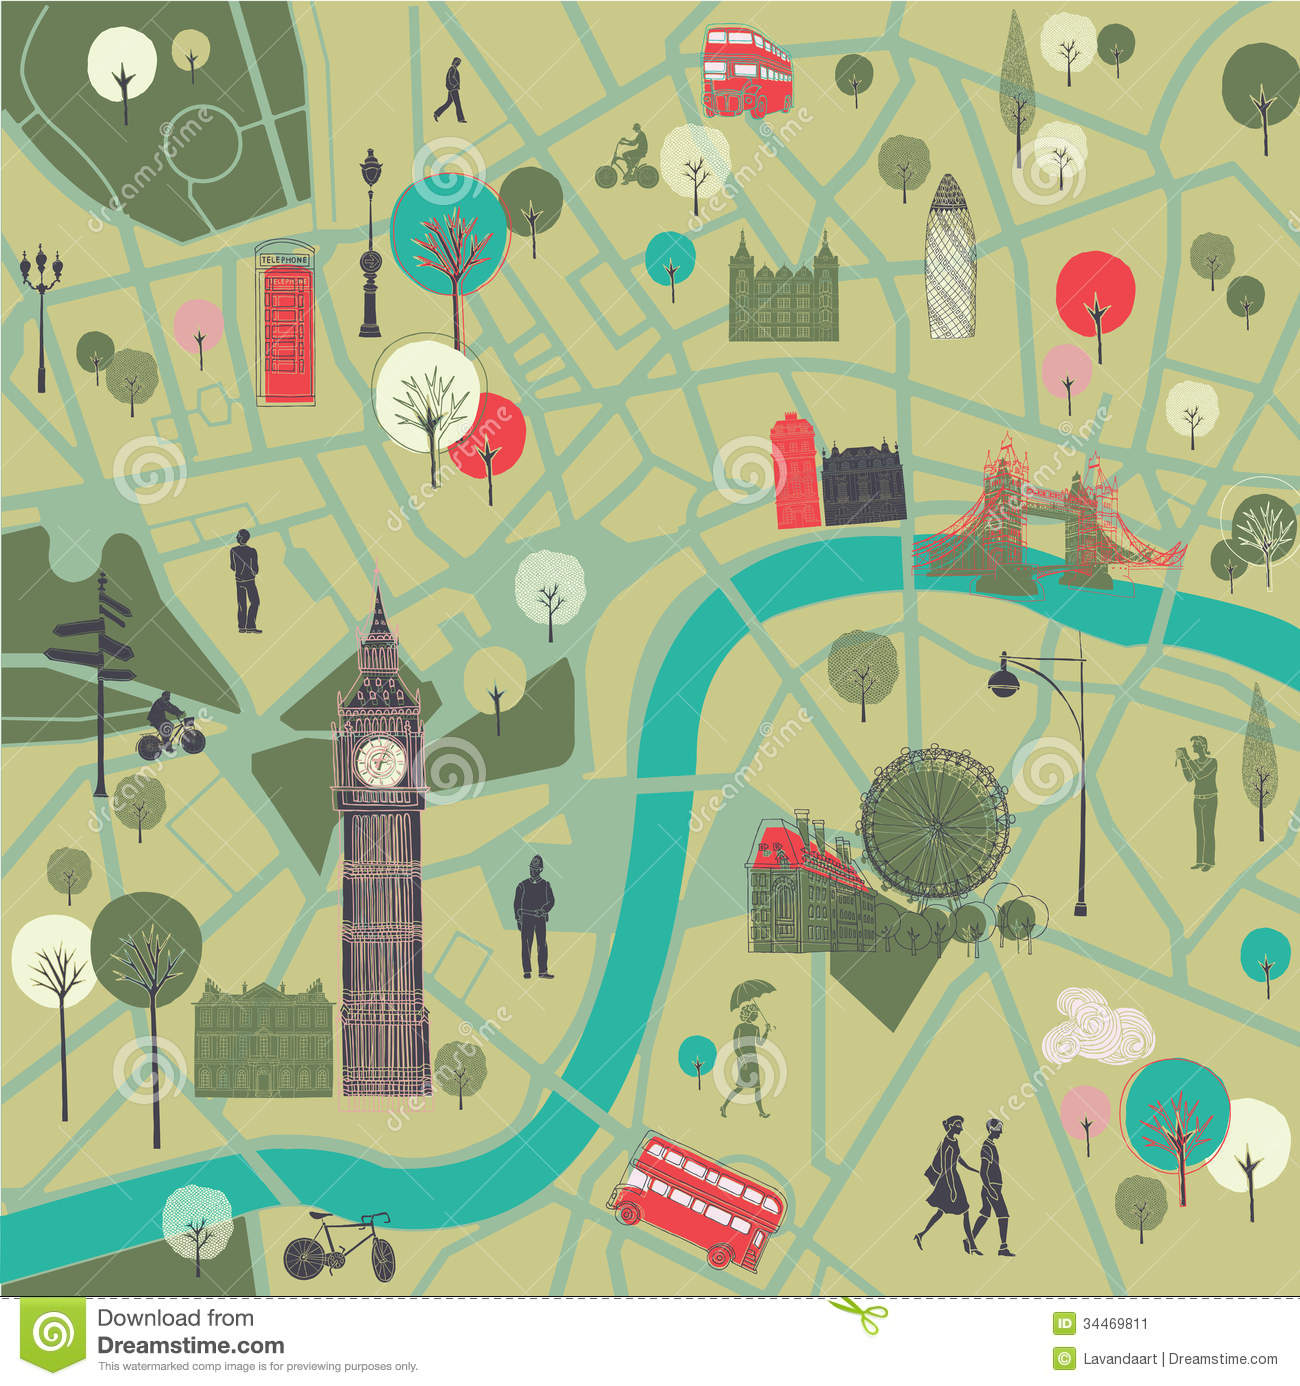 Map Of London With Landmarks Image Image 34469811 – Map Of Central London For Tourists